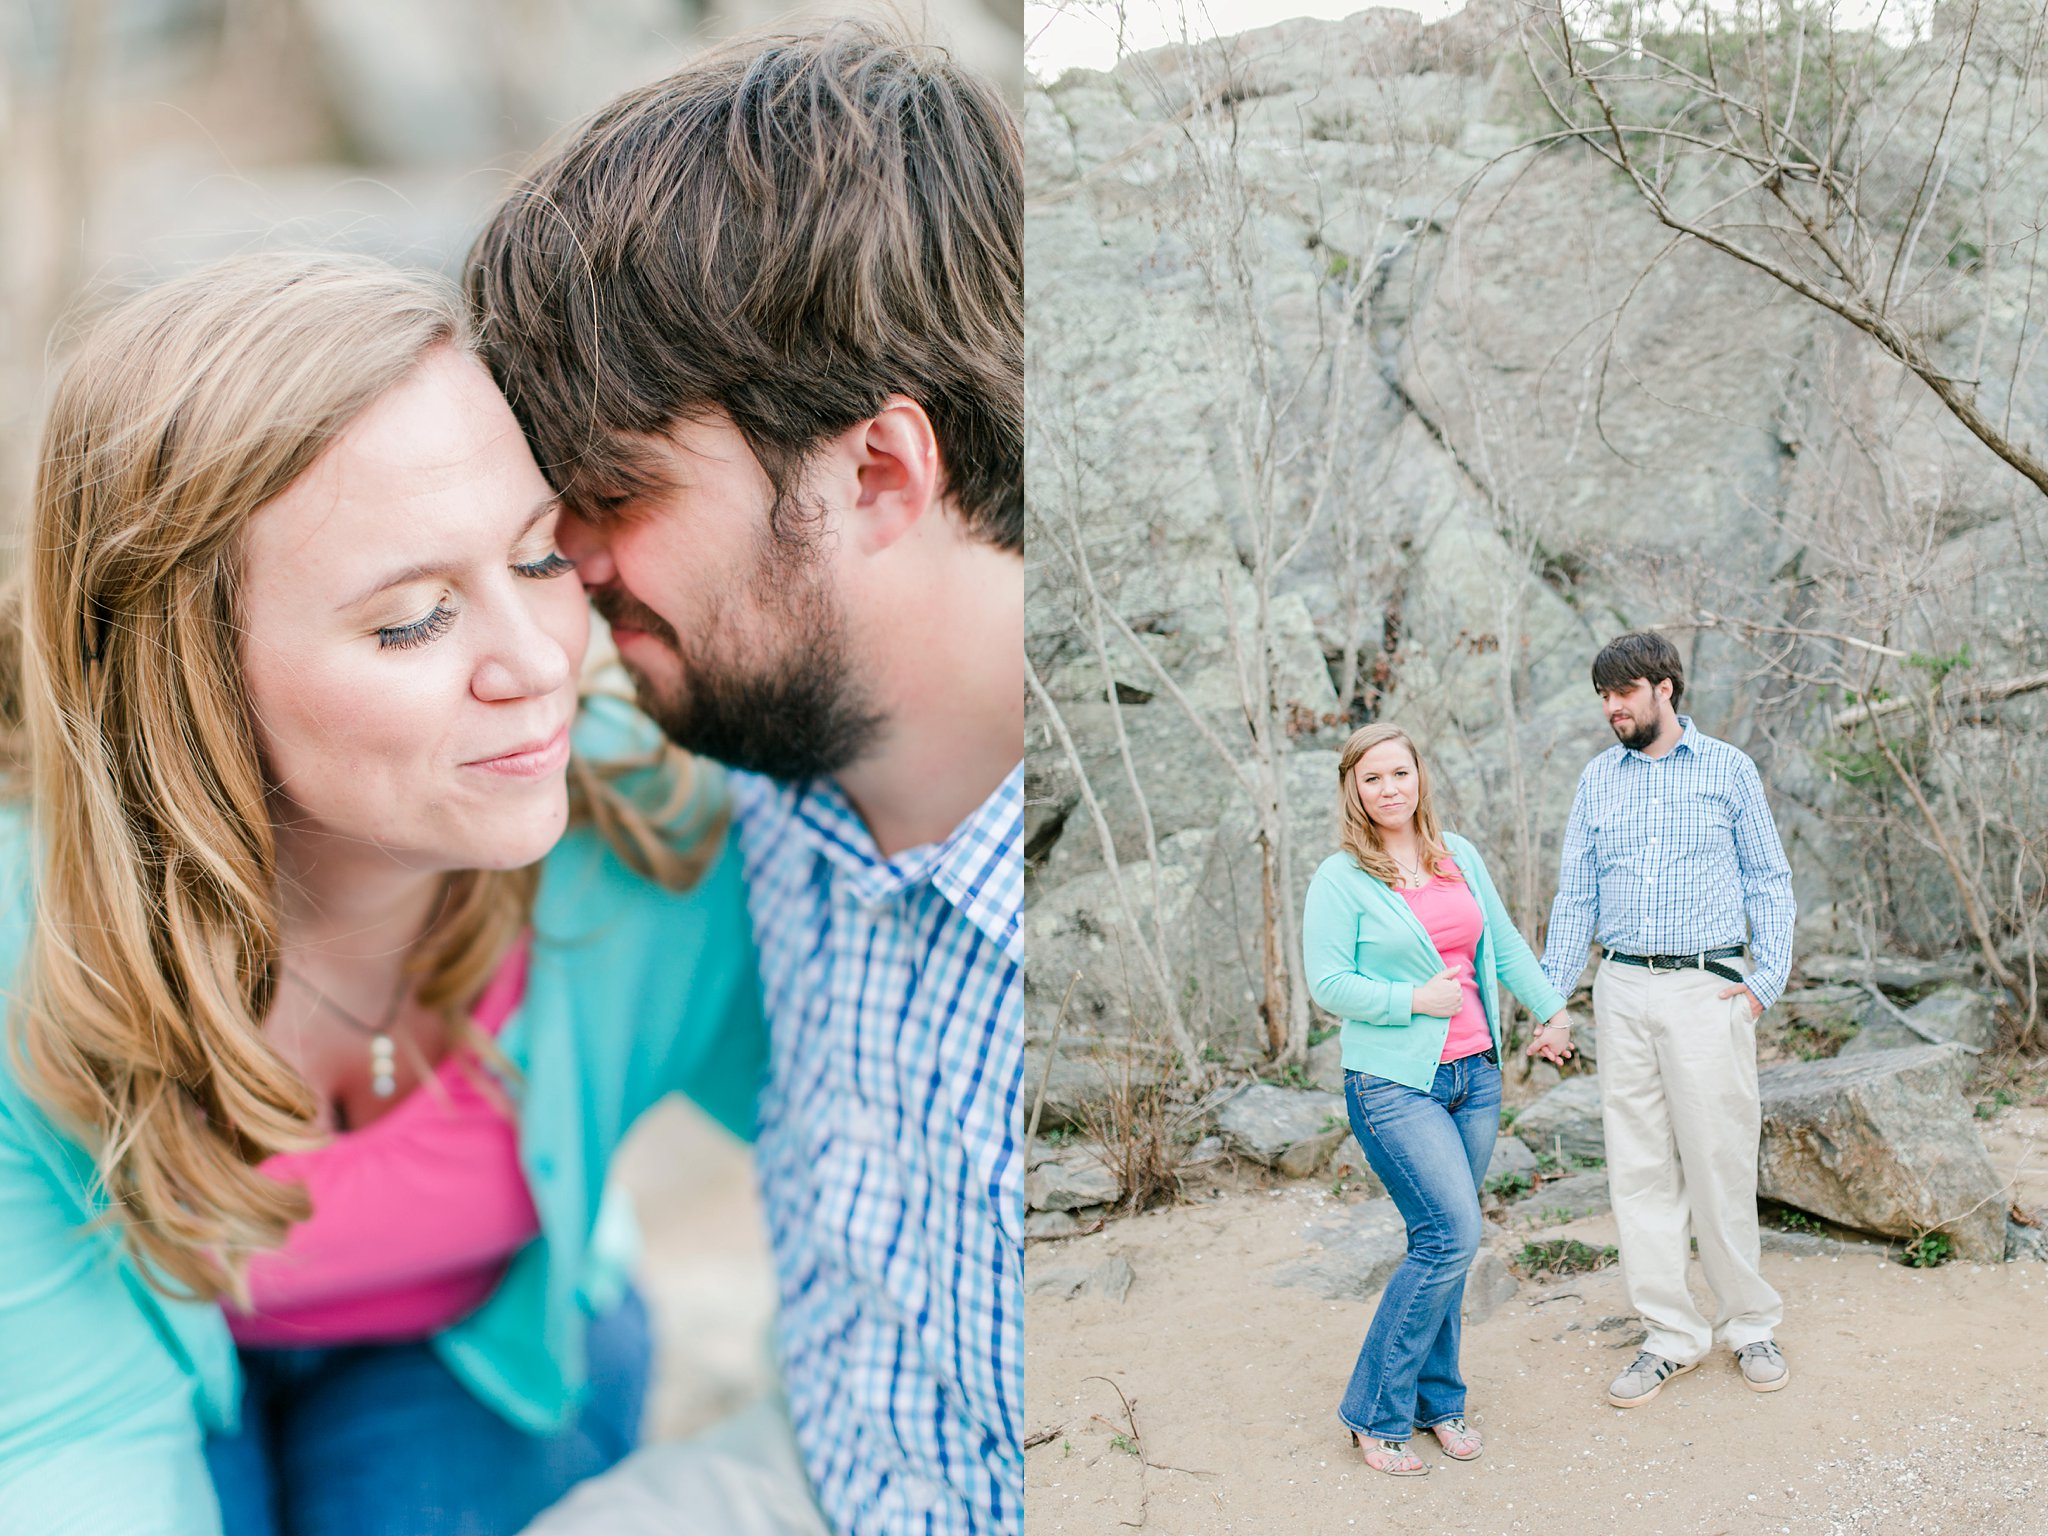 Great Falls Engagement Photos DC Wedding Photographer Megan Kelsey Photography Mary Beth & Nathan-143.jpg